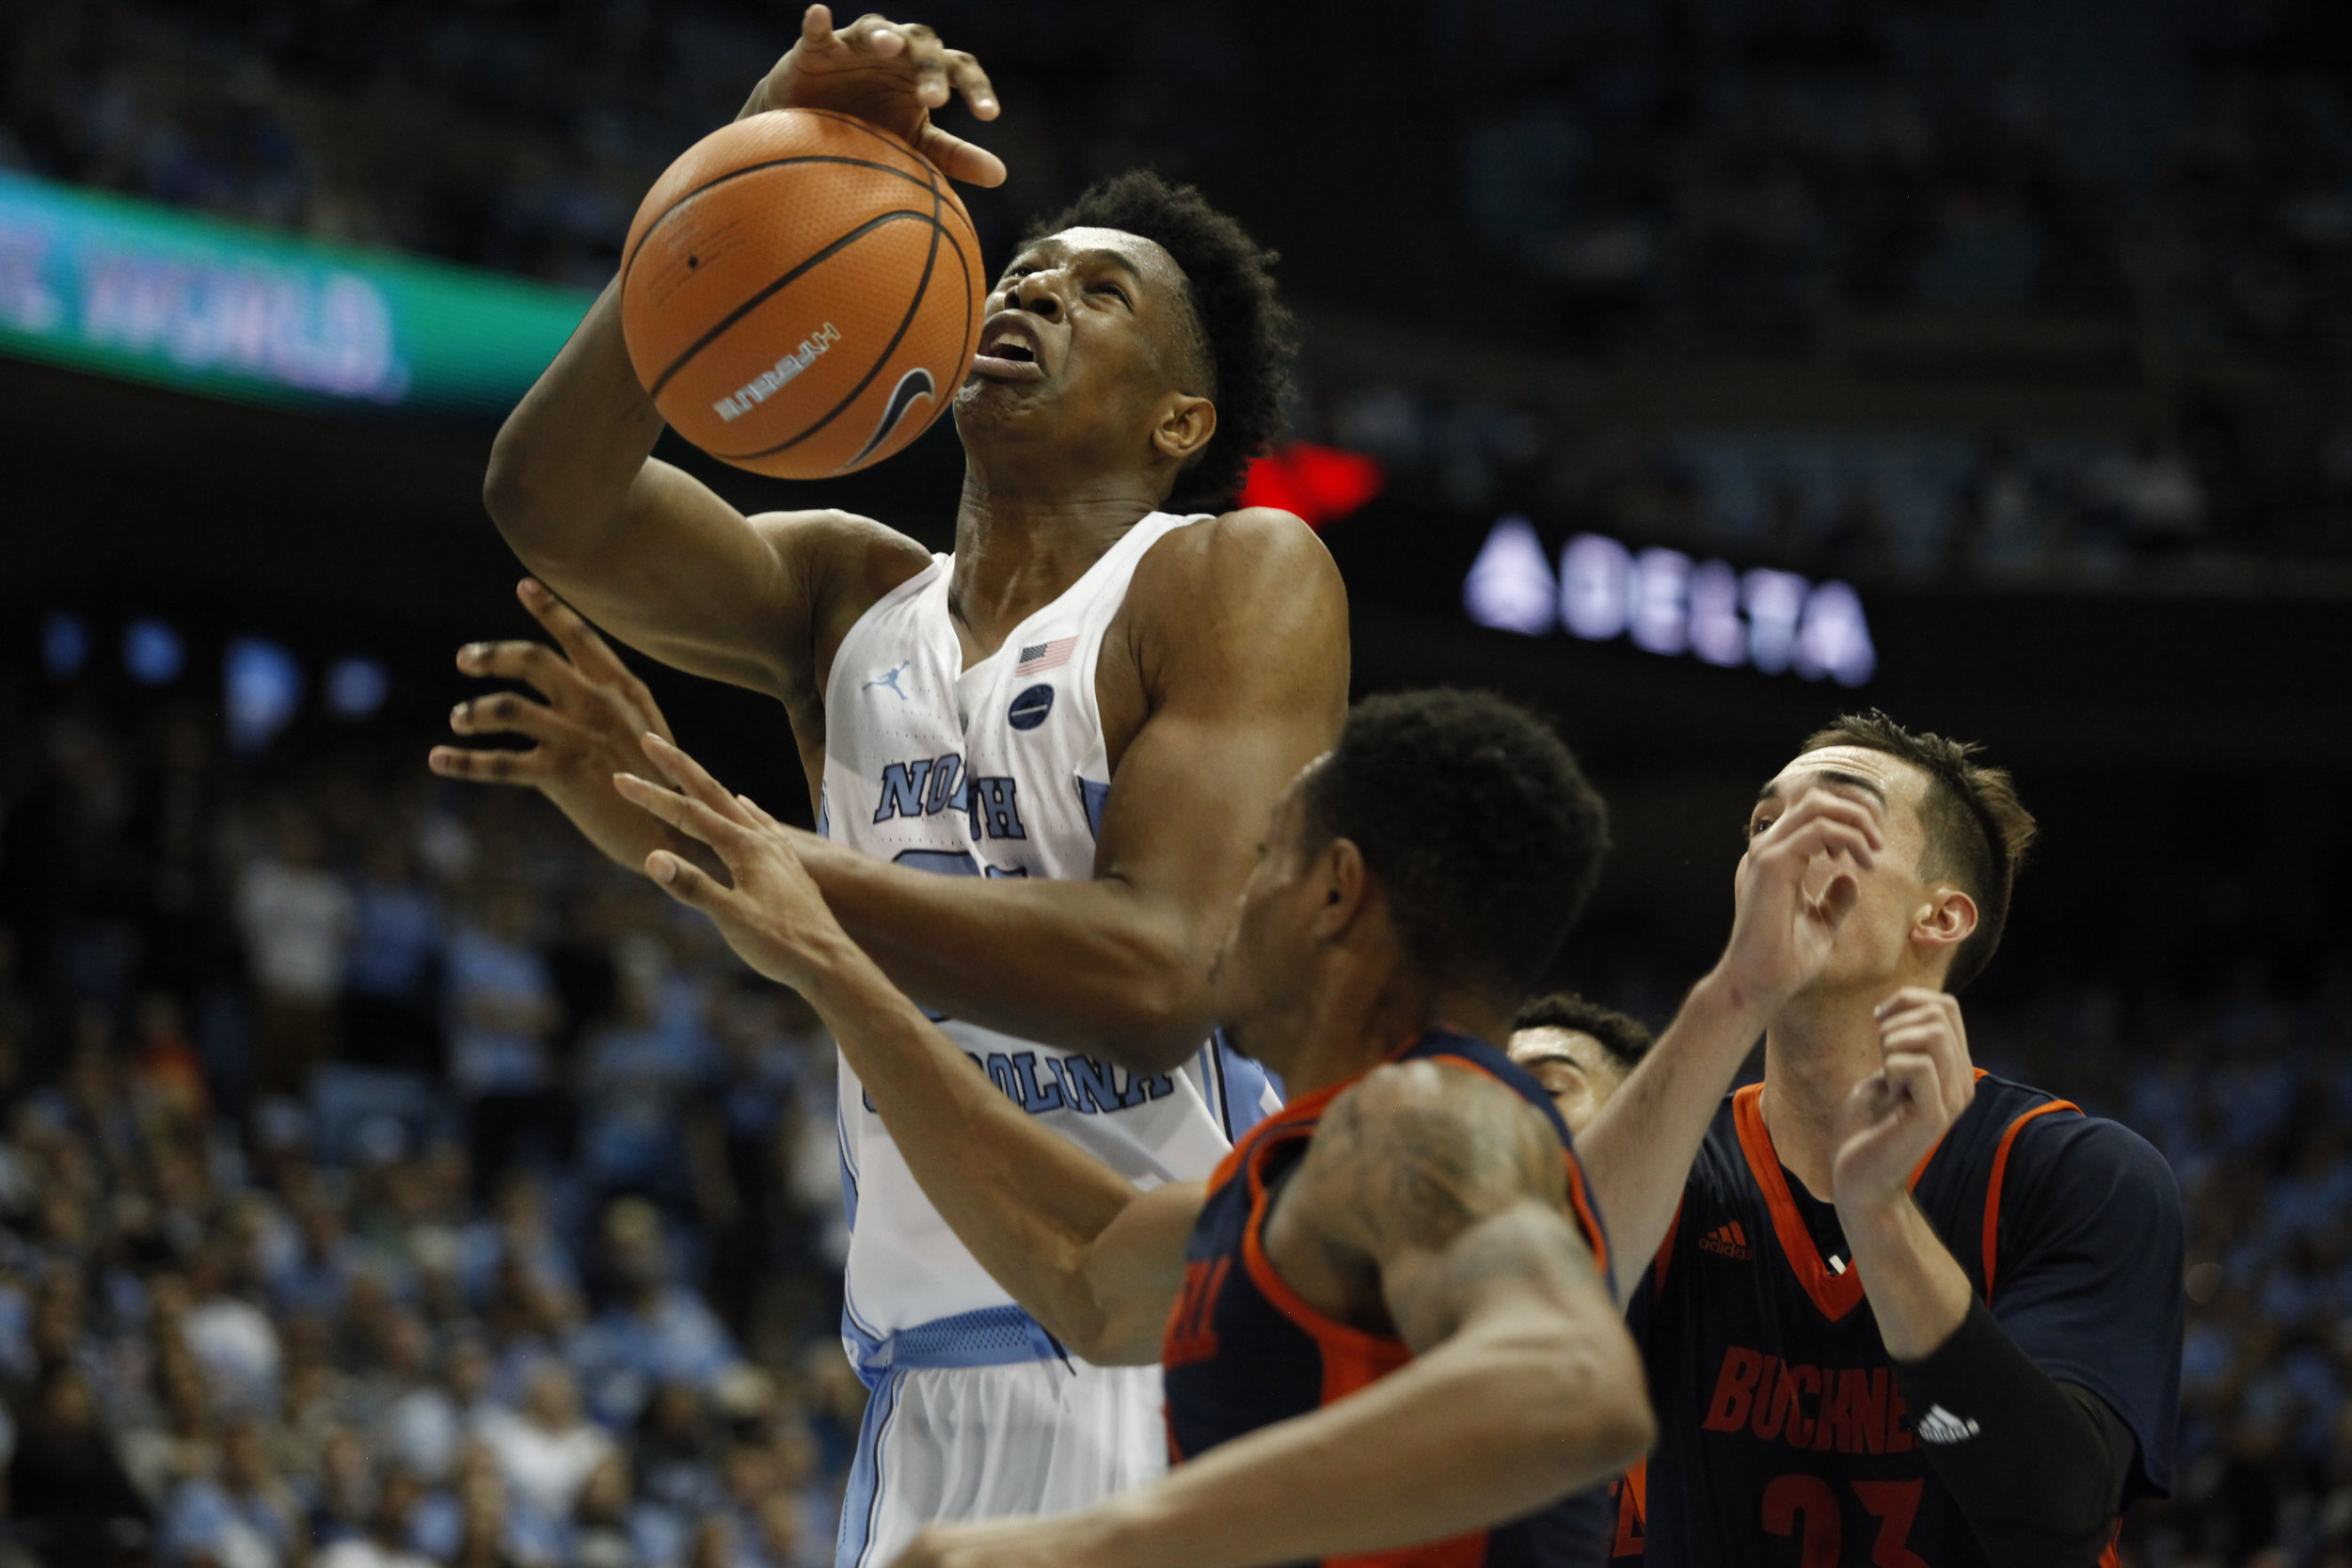 UNC forward, Sterling Manley, is fouled while going up to the basket during the game against Bucknell.